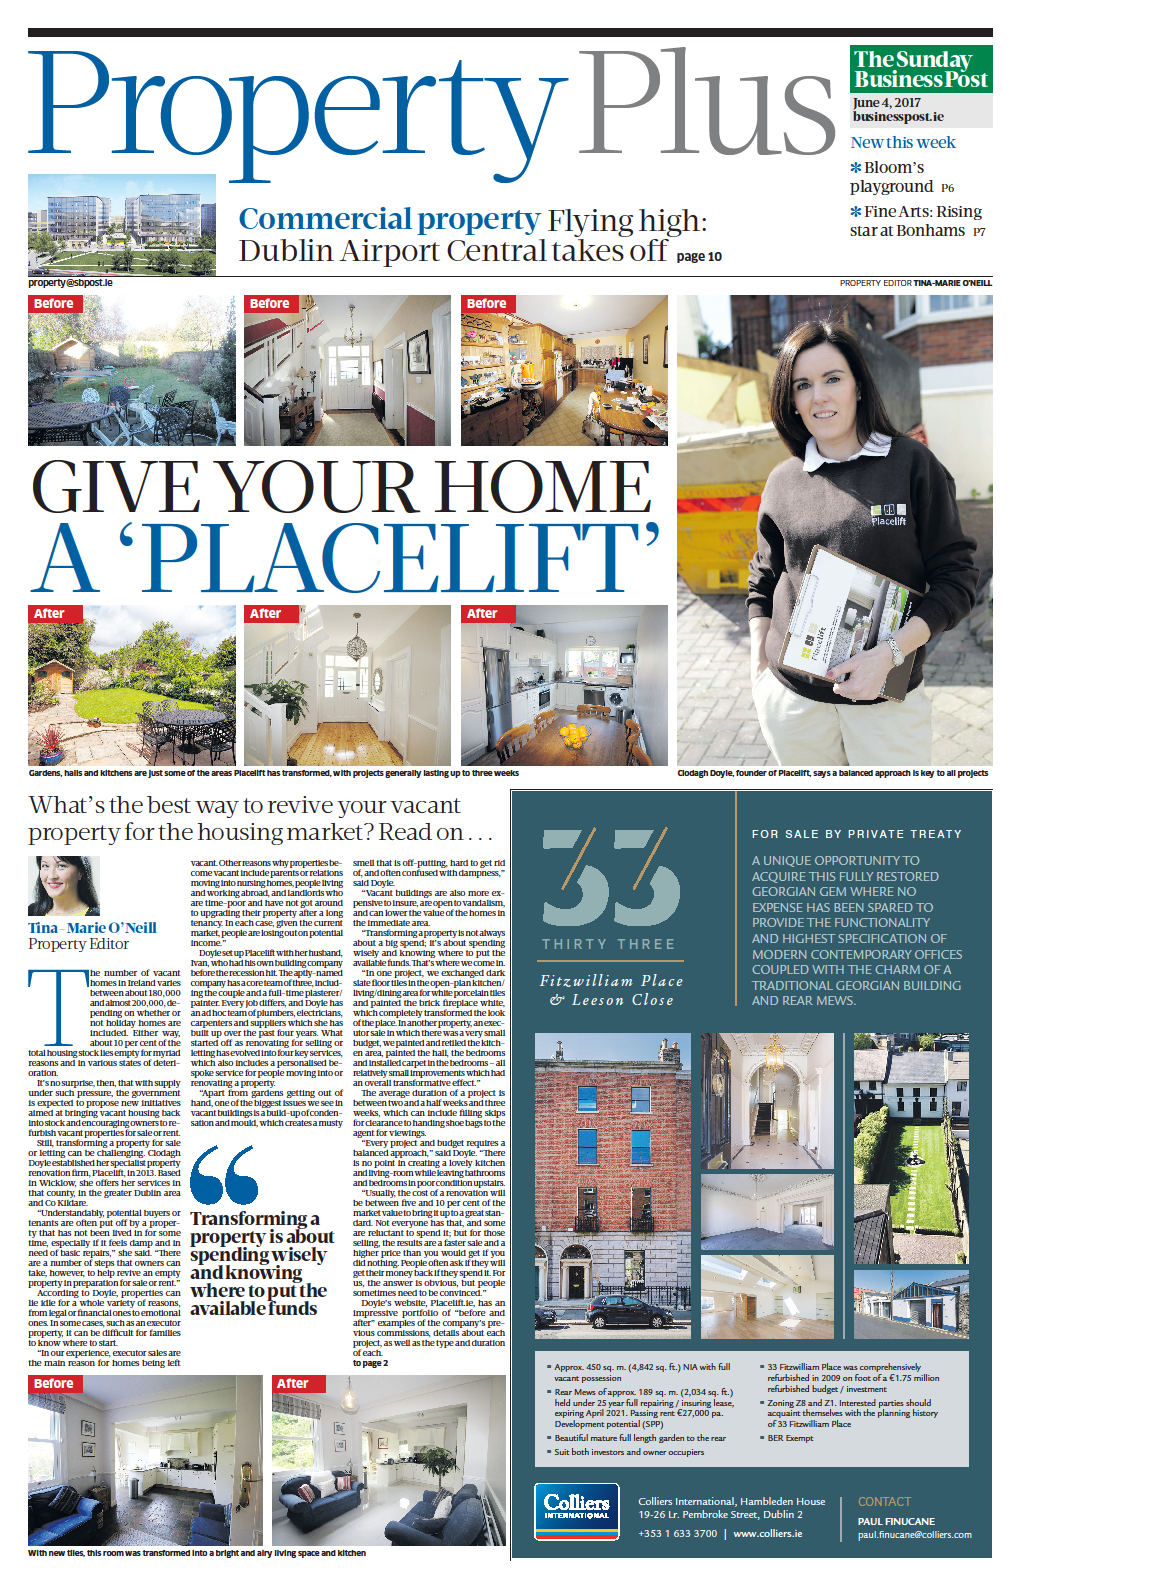 Sunday Business Post featuring Placelift